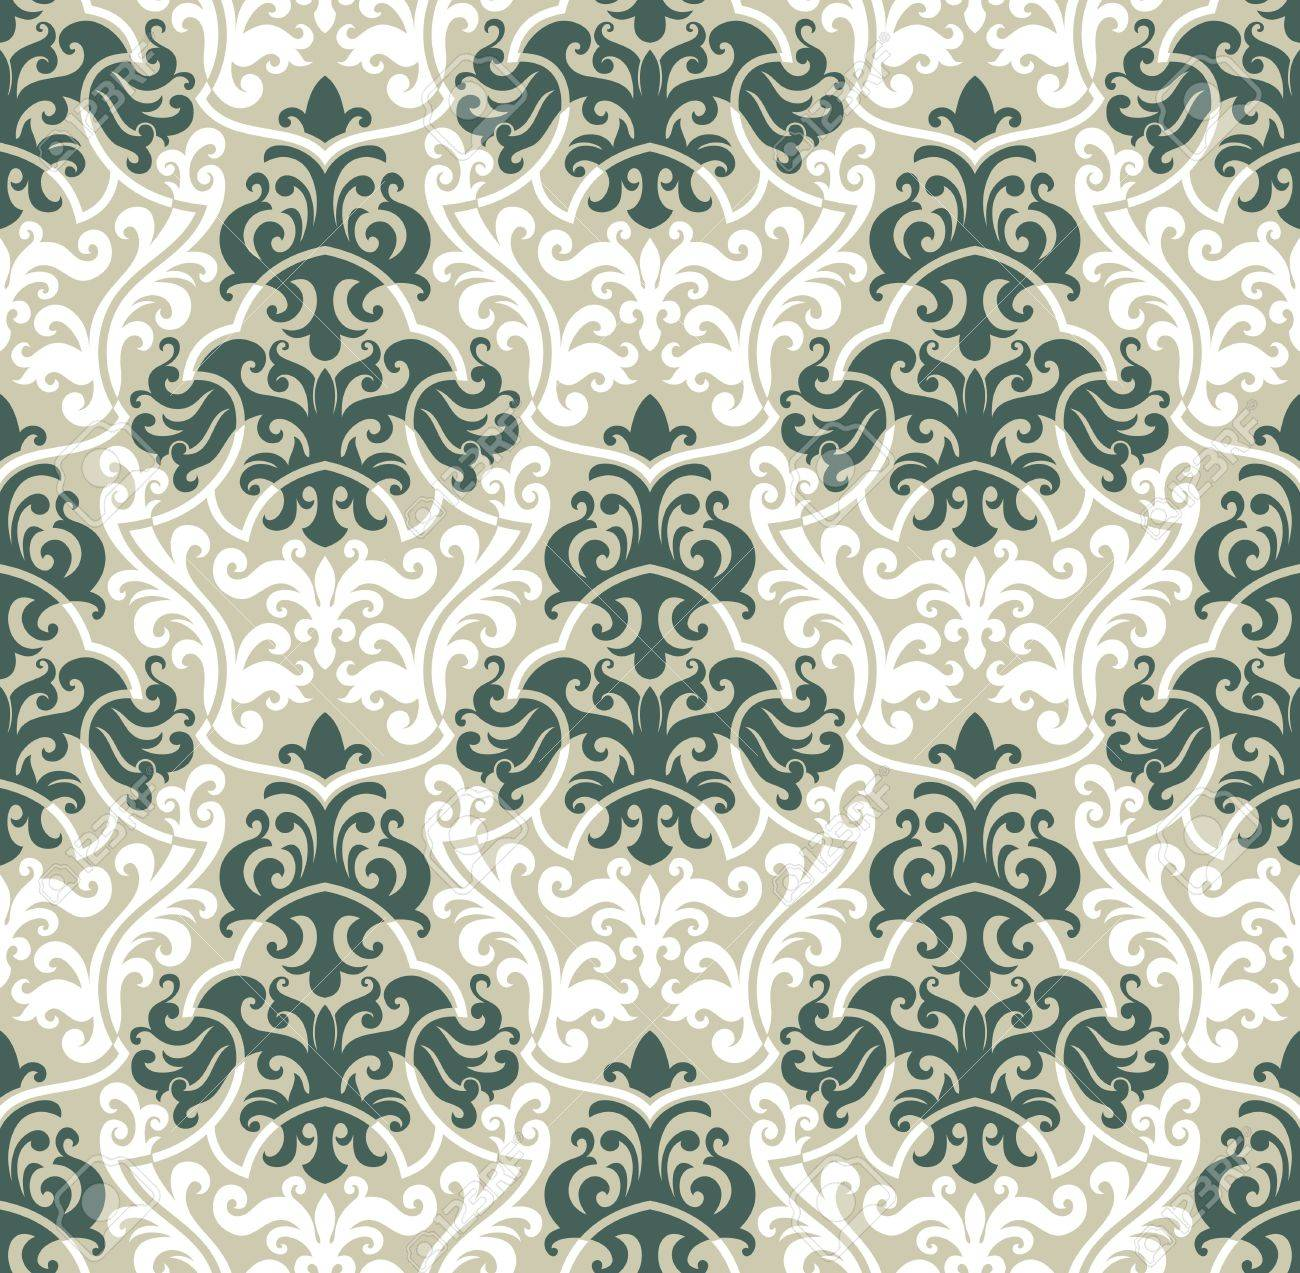 Seamless background from a floral ornament, Fashionable modern wallpaper or textile Stock Vector - 6584691